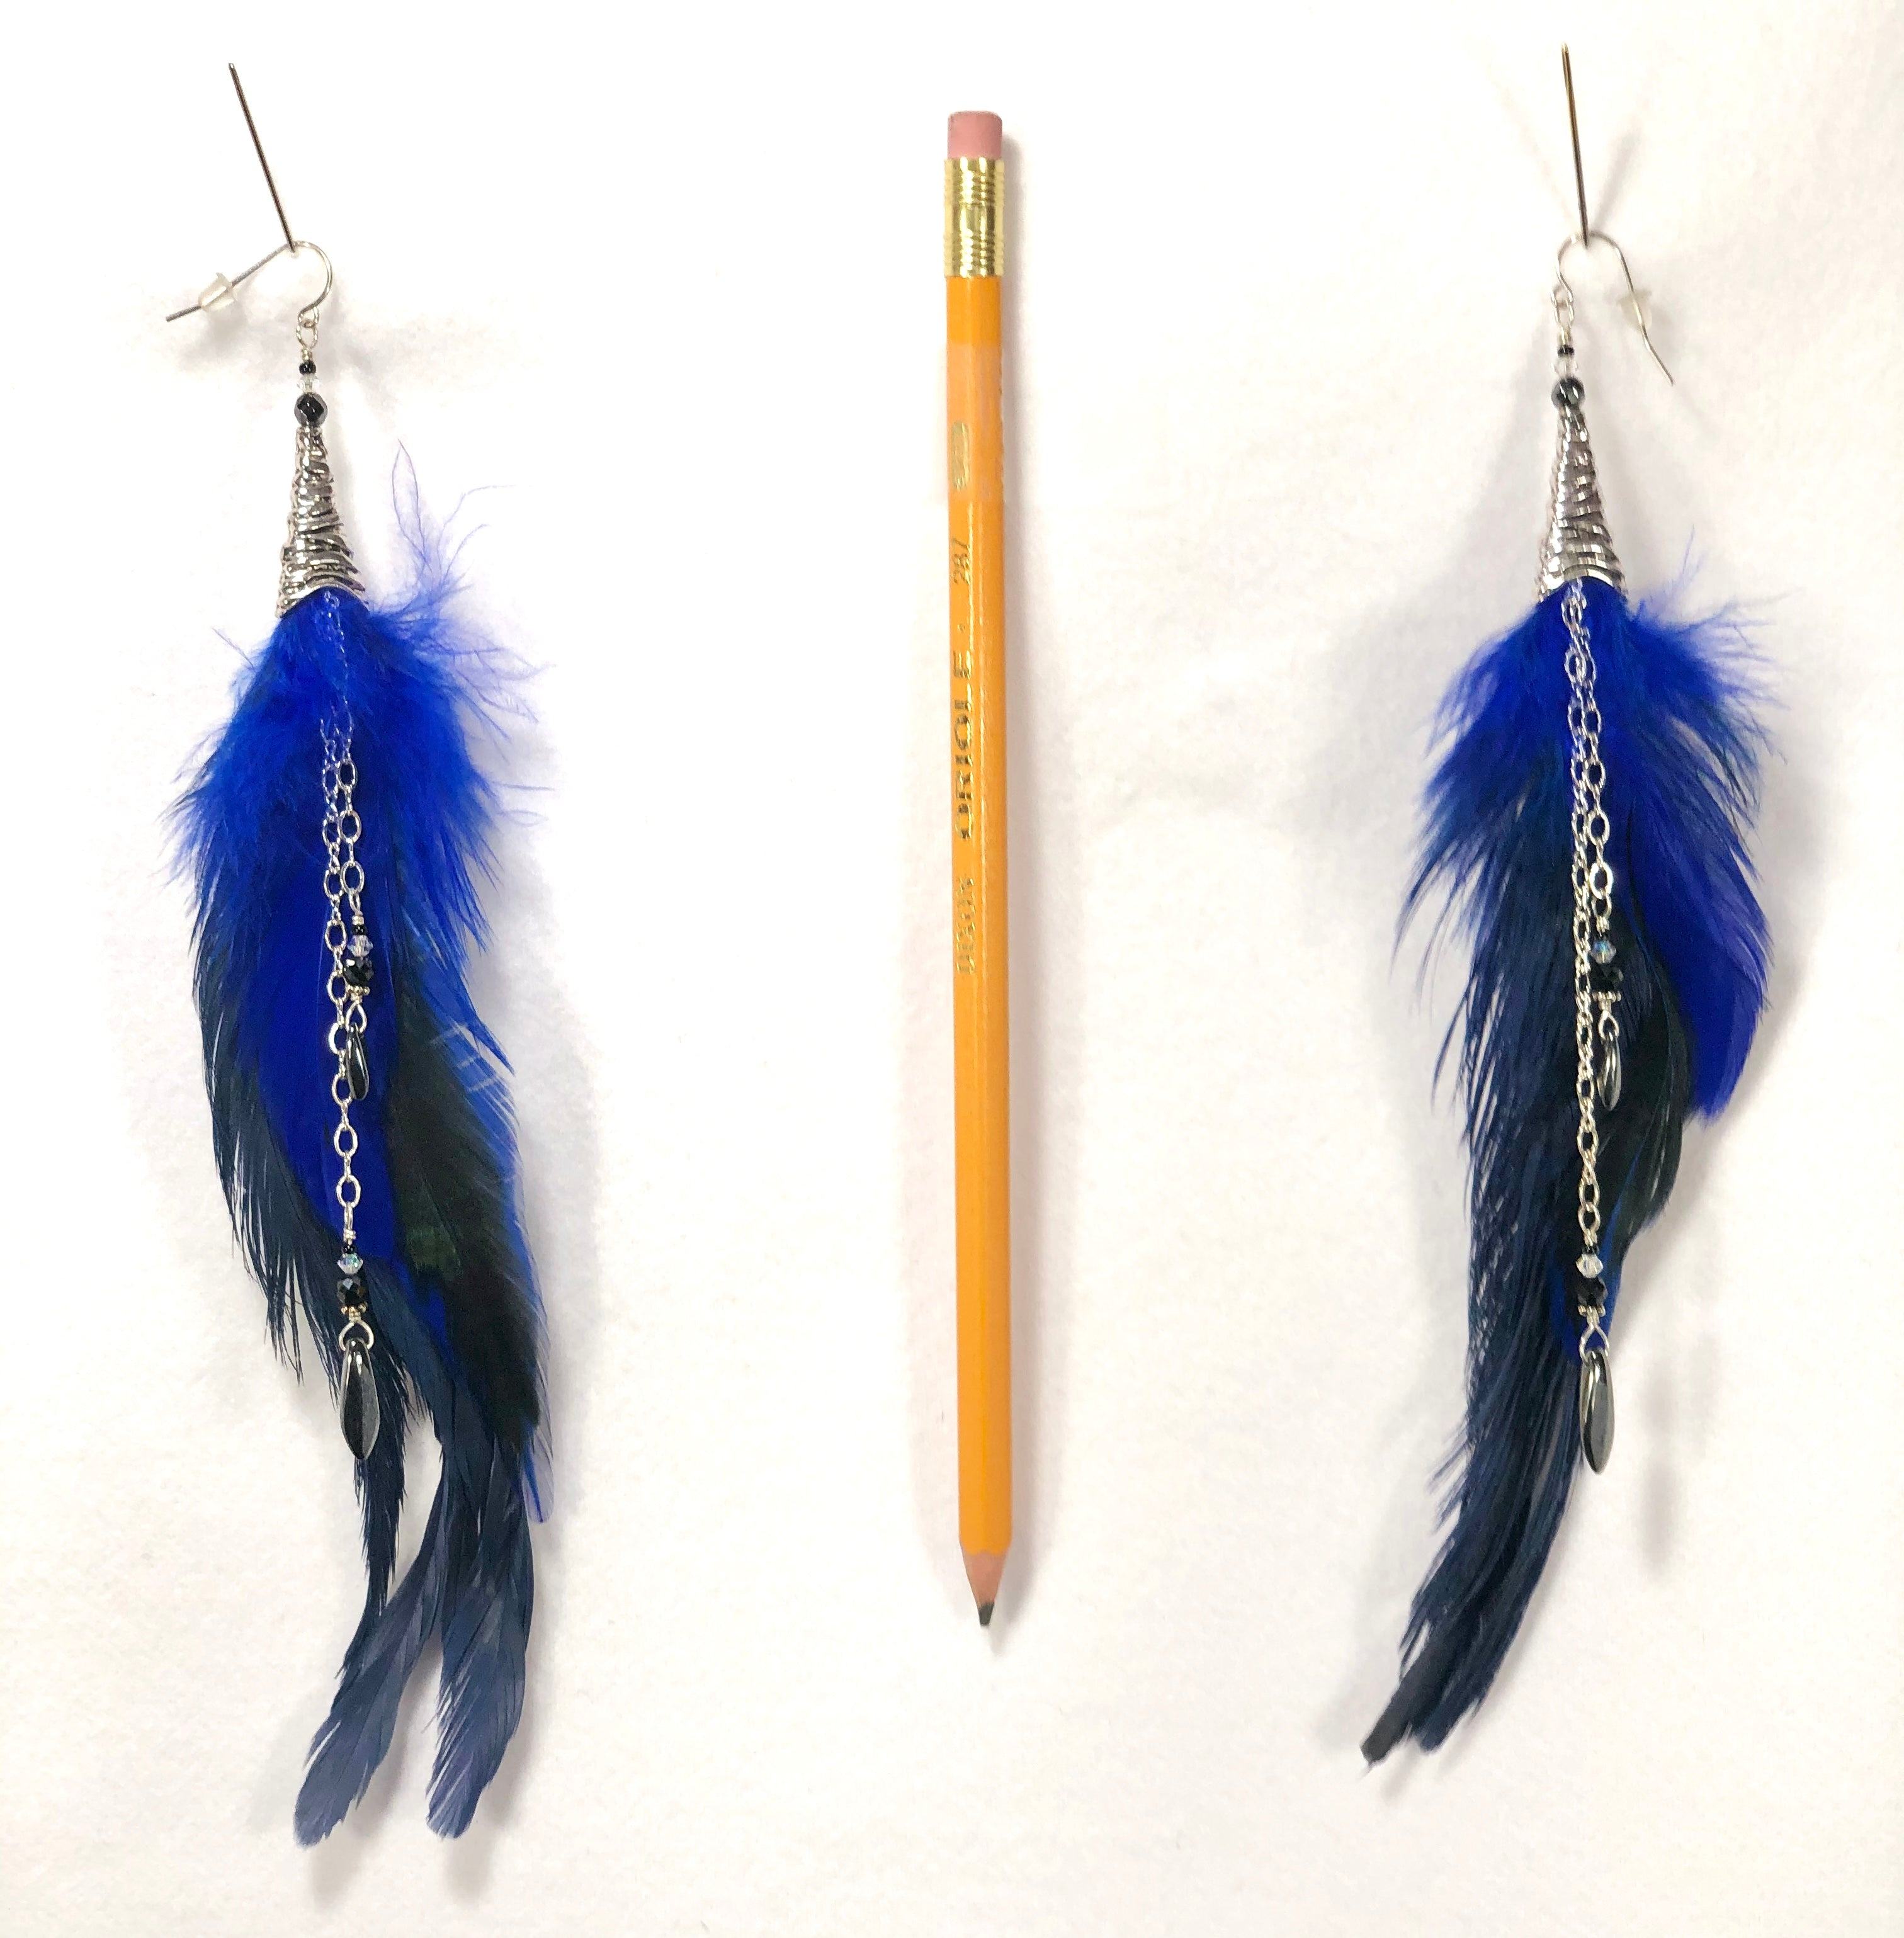 Pair of Royal Blue feather earrings with silver accents ER06